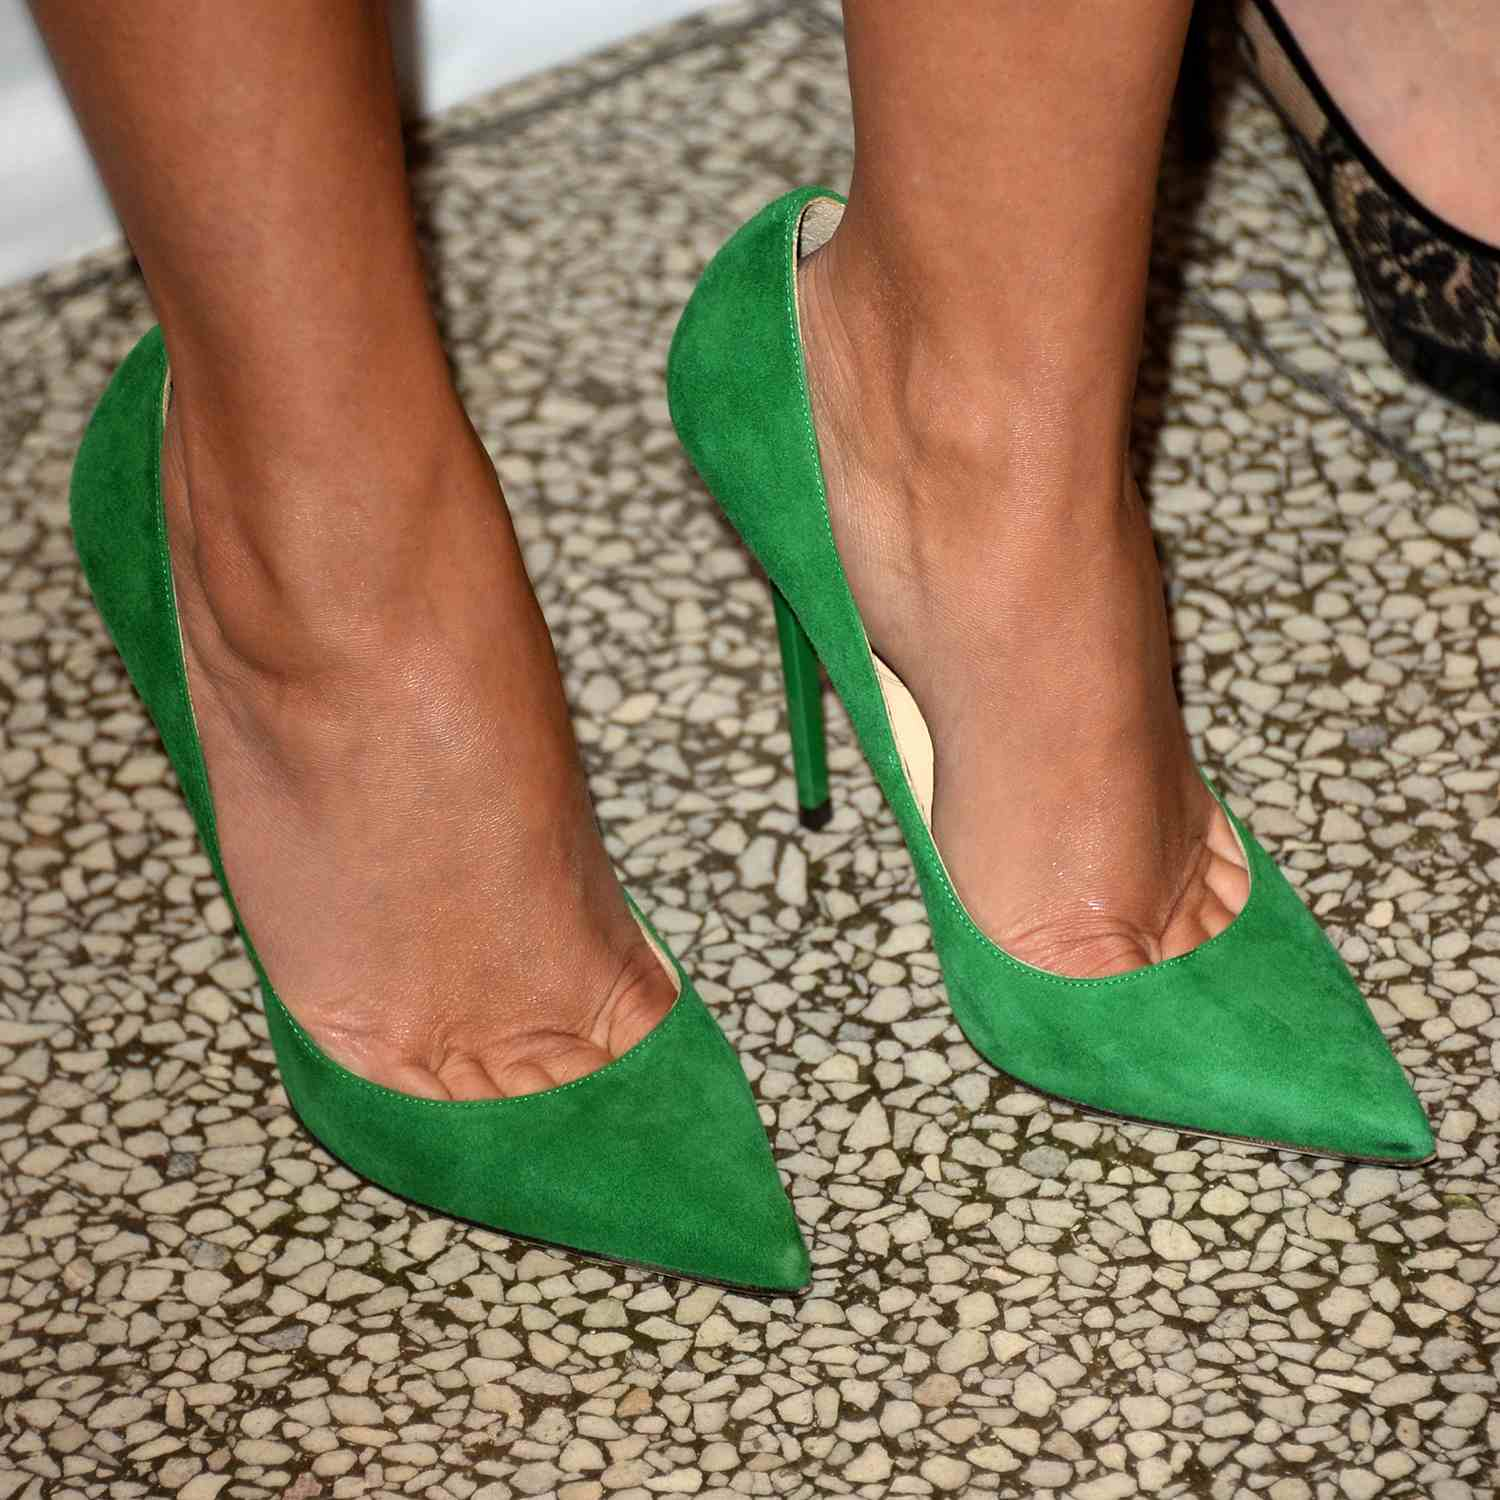 ac831676b2 Close-up of green suede pumps, as worn by actress Reese Witherspoon.